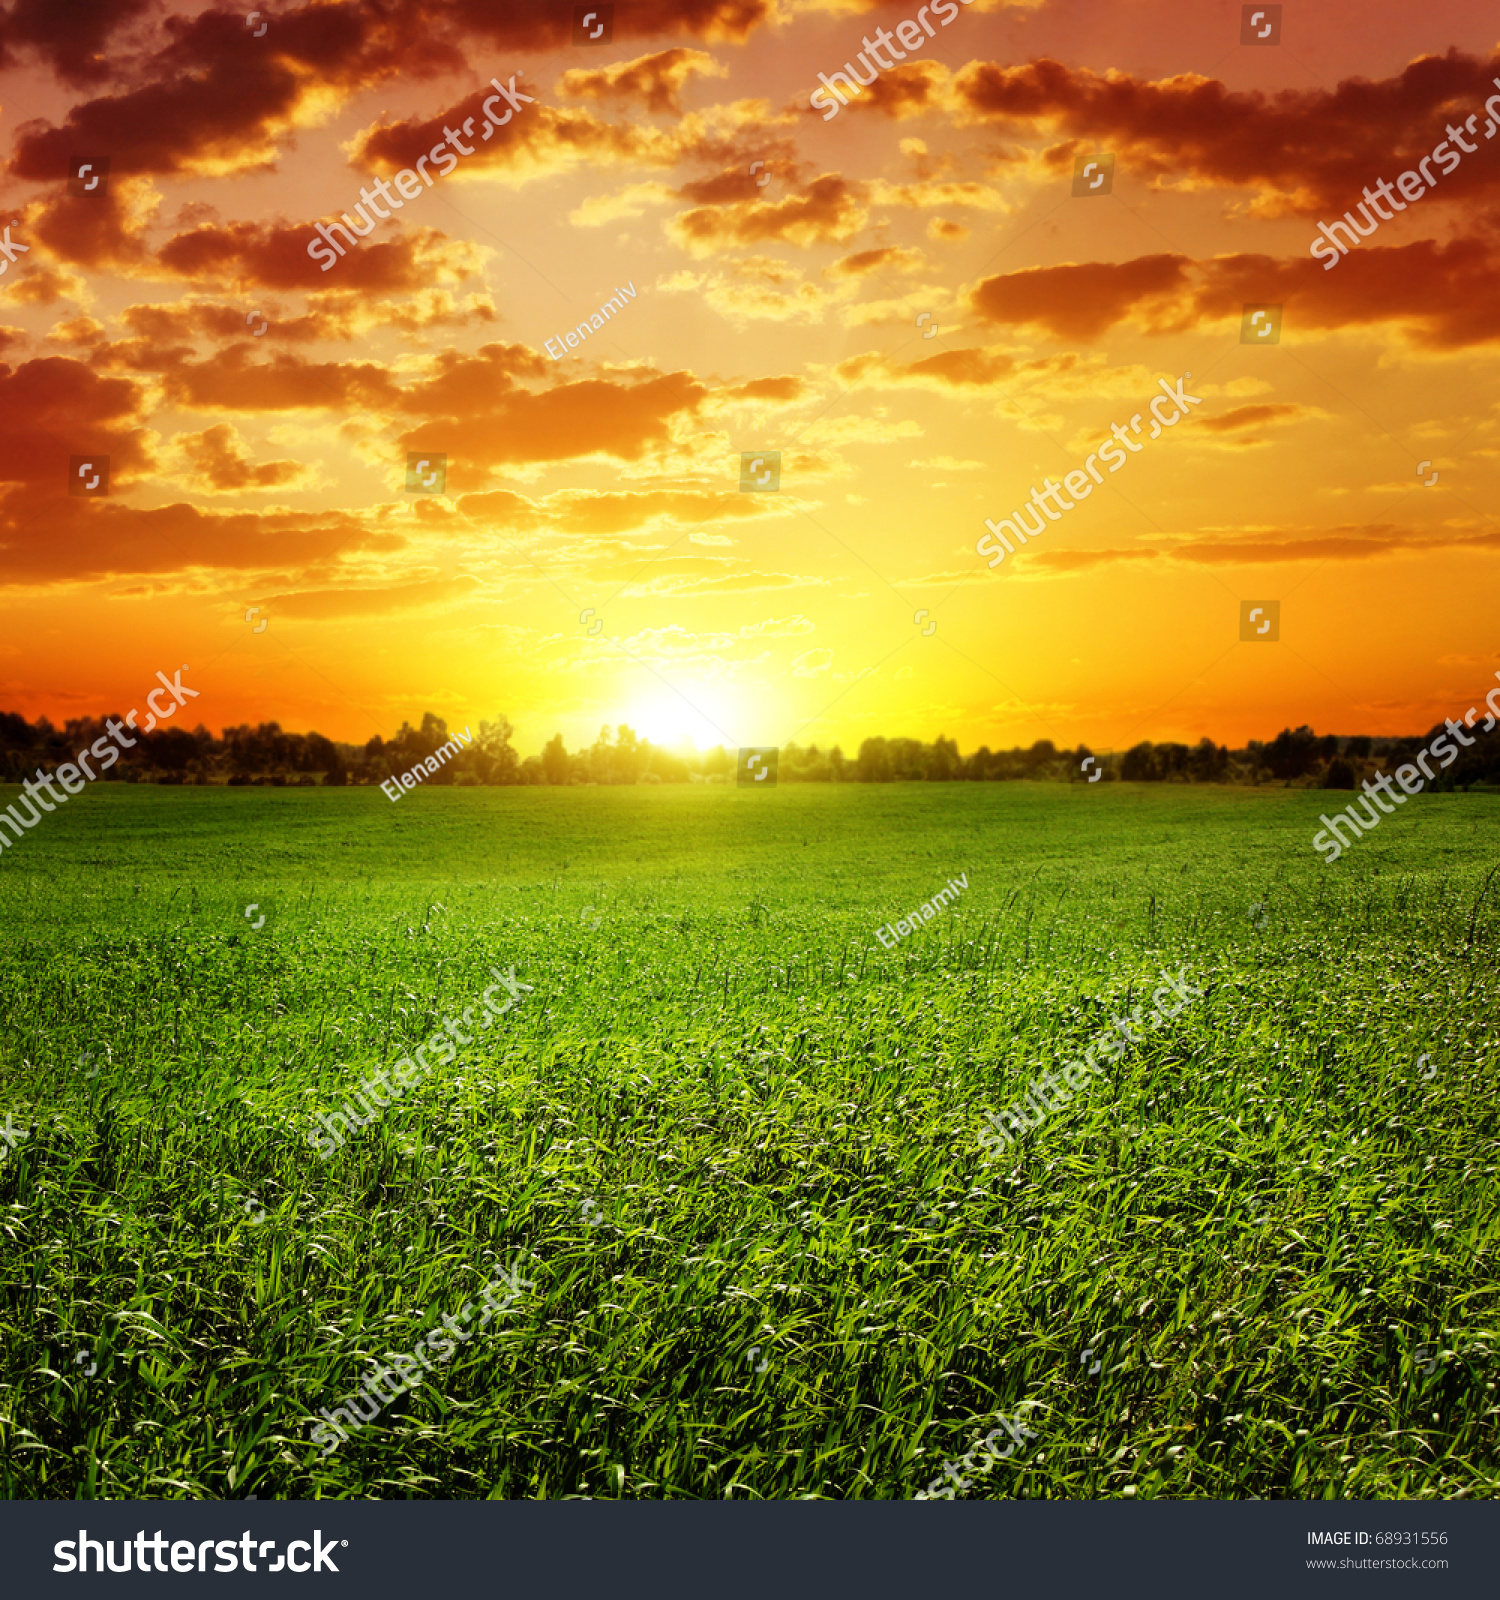 grass field sunset. Field Of Grass And Colorful Sunset. Sunset